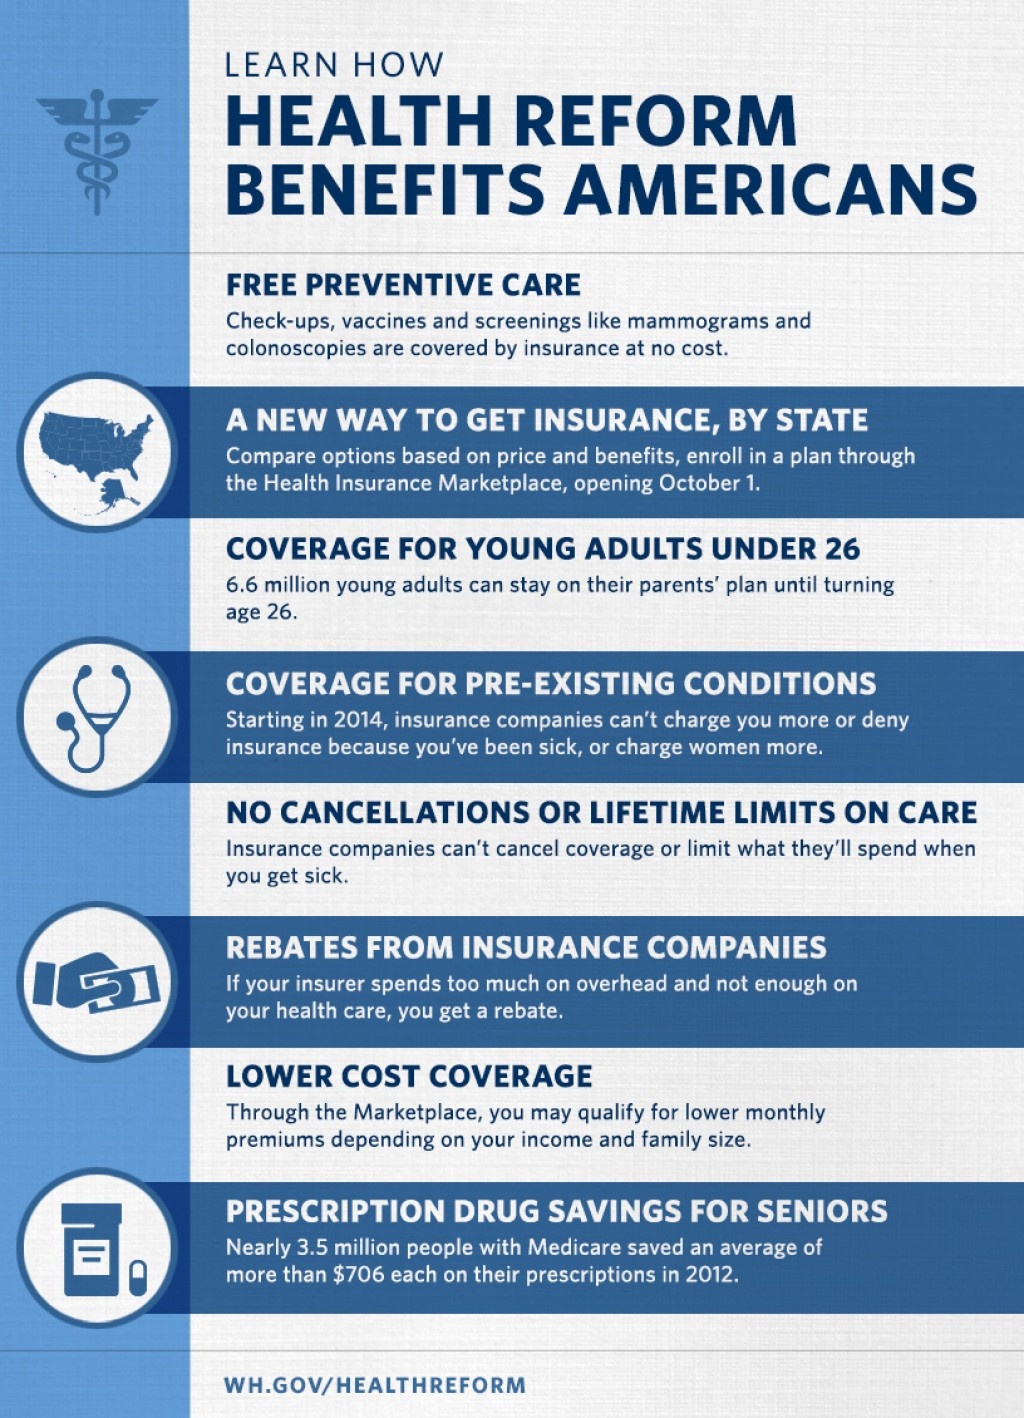 004 Obamacare Essay Healthcare List Graphic 08072013 0 Stupendous Analysis Repeal Conclusion Large